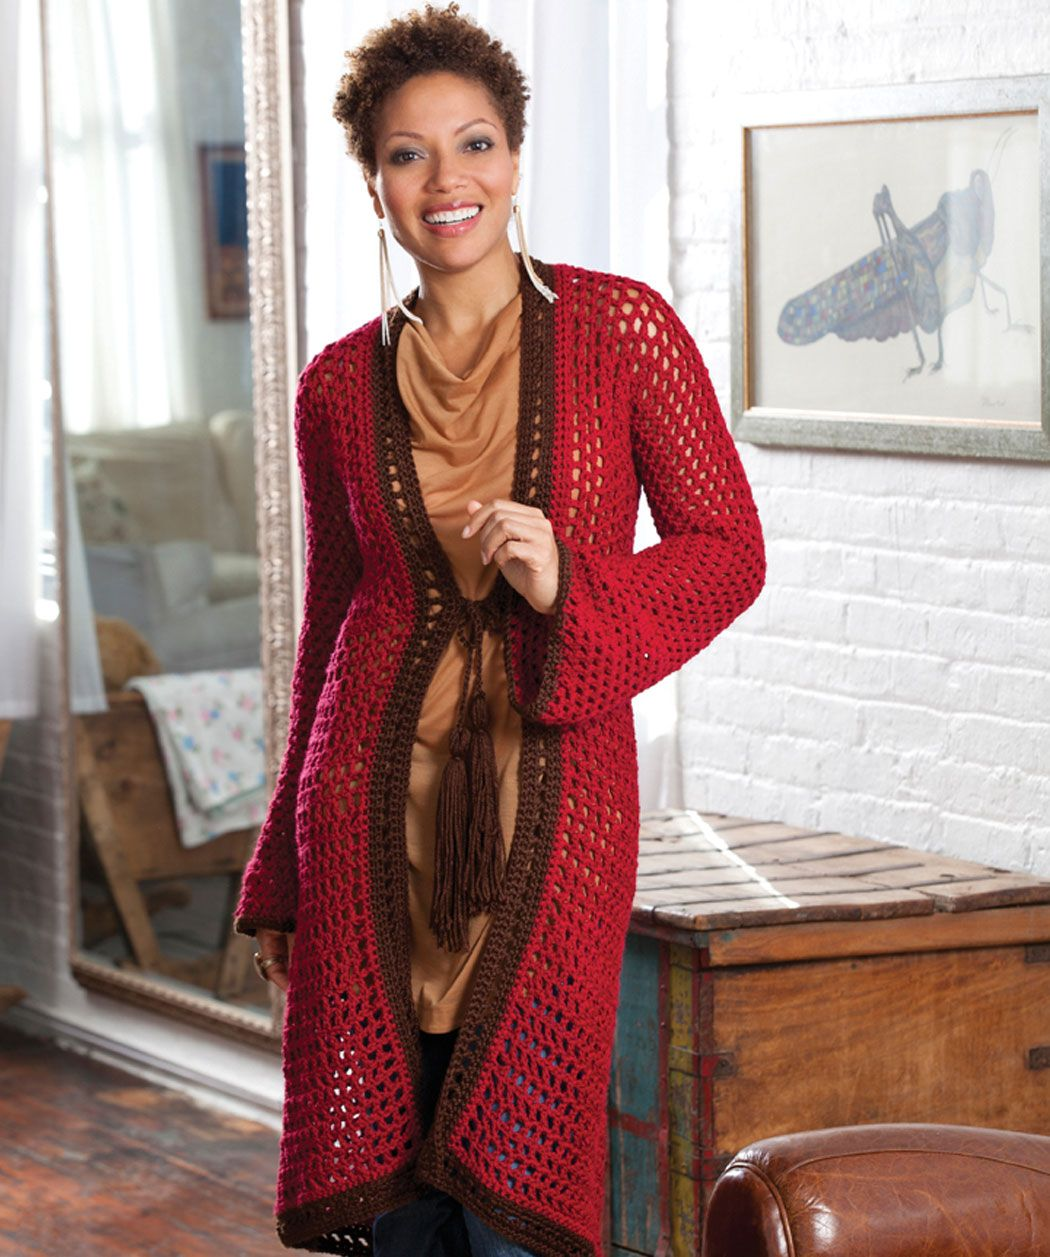 Crochet A Long Cardigan That Allows You To Look Ever So